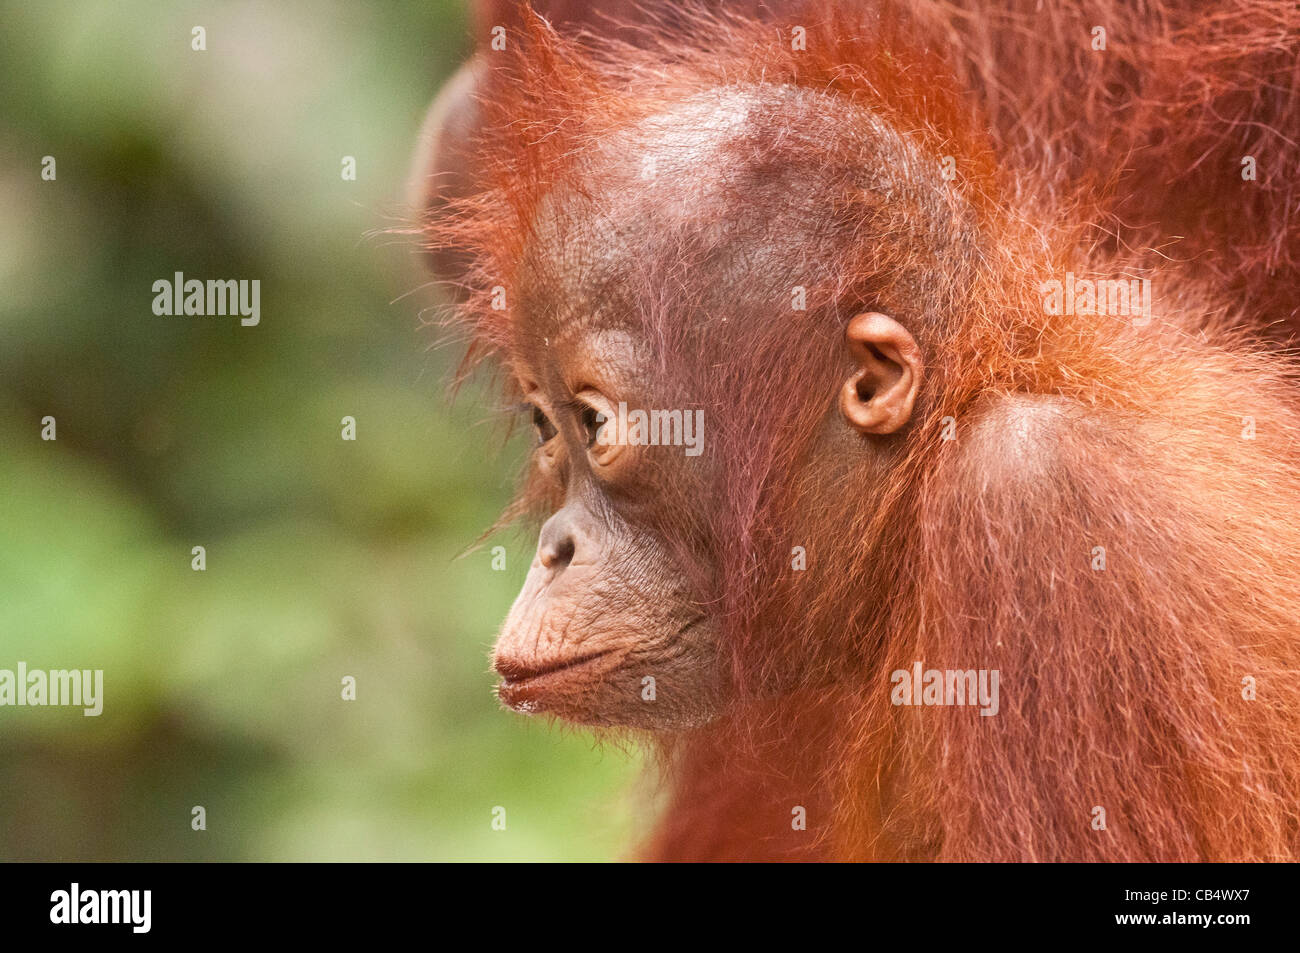 Infant Bornean orangutan with puckered lips and defocused foliage behind. Horizontal format with copyspace. - Stock Image